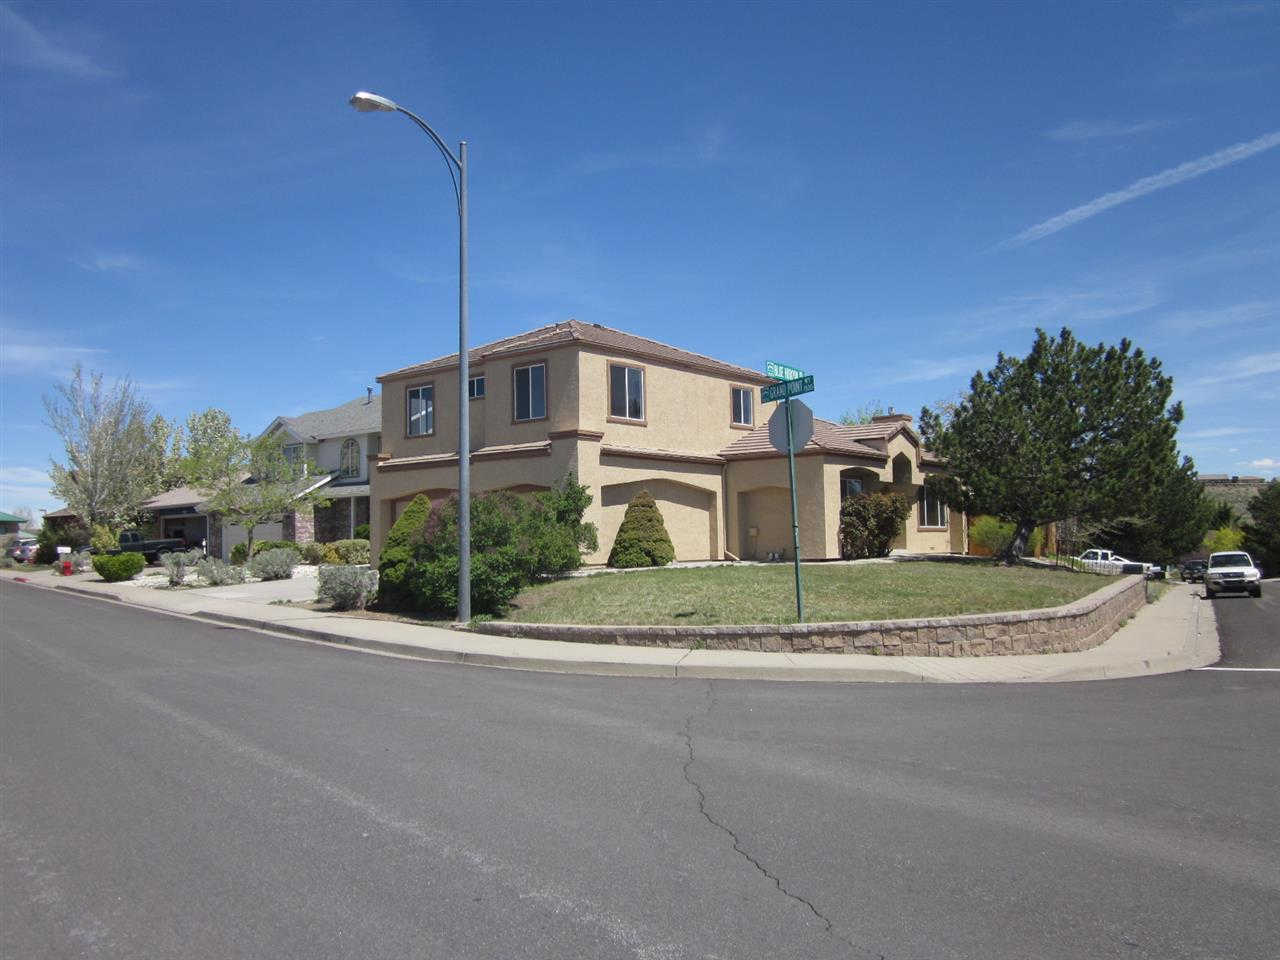 5895 Blue Horizon Drive, Reno, NV 89523 now has a new price of $399,900!